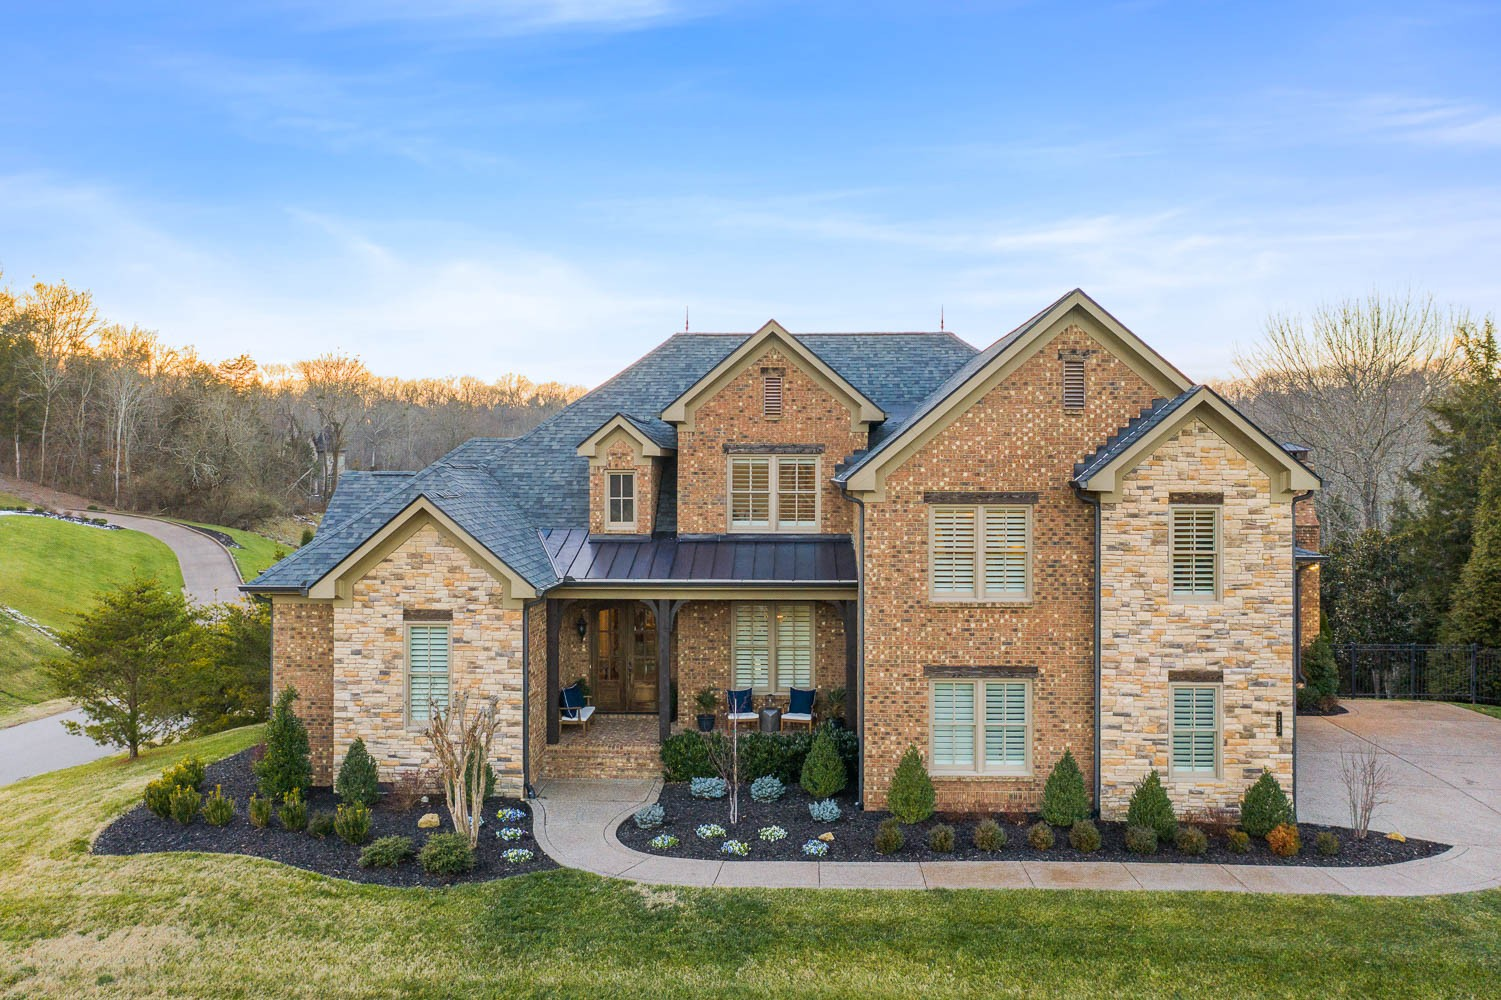 713 Pendragon Ct Property Photo - Franklin, TN real estate listing